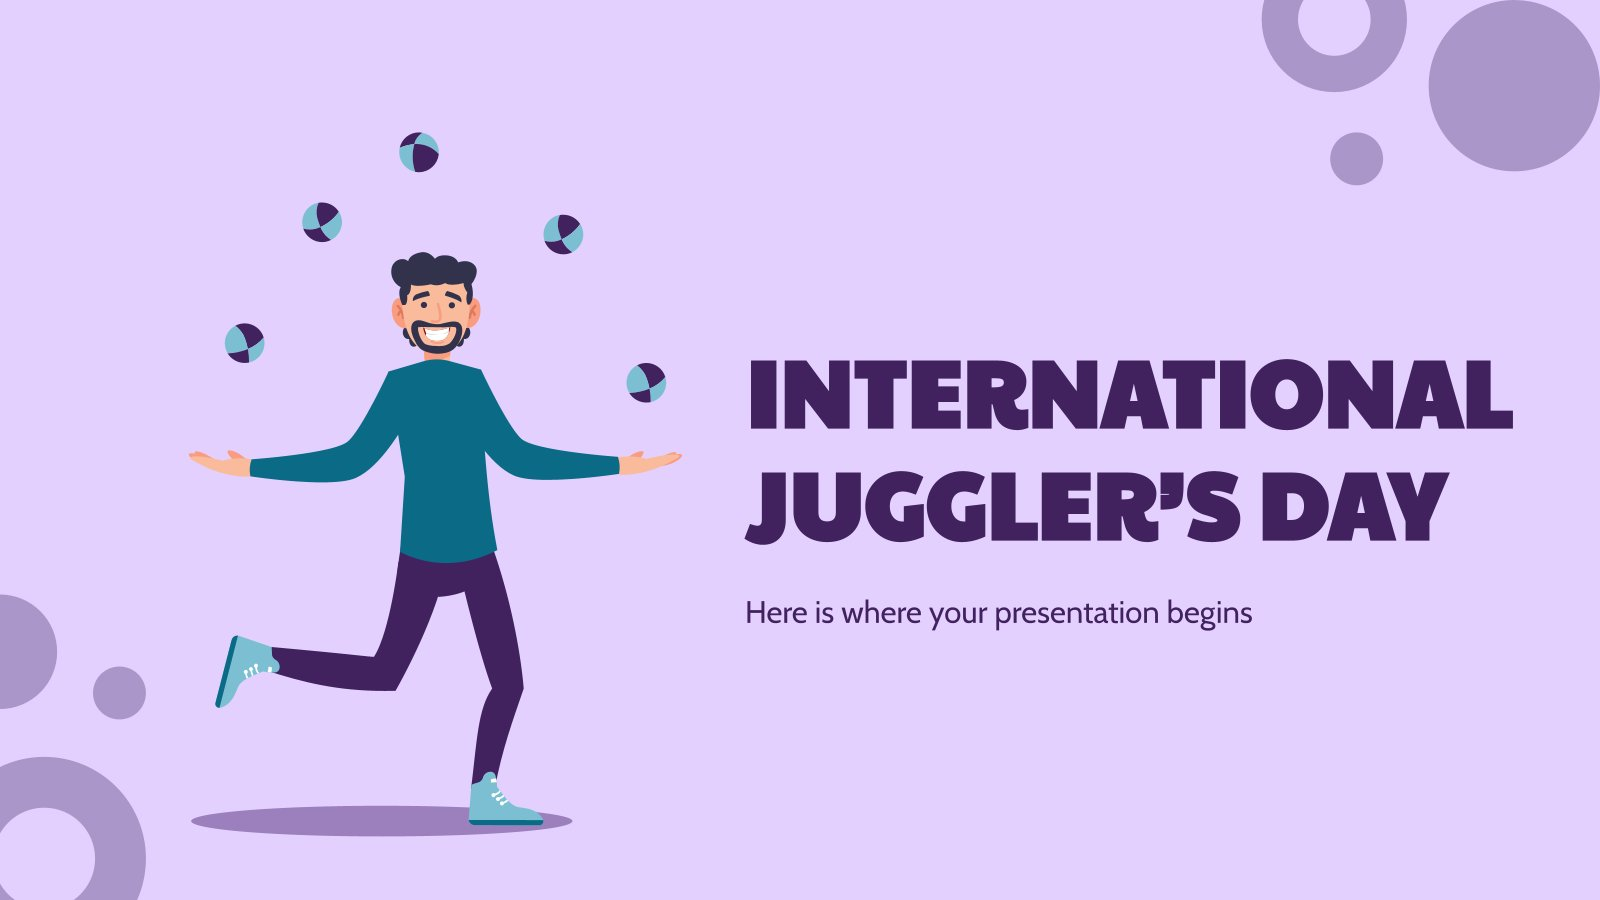 International Juggler's Day presentation template